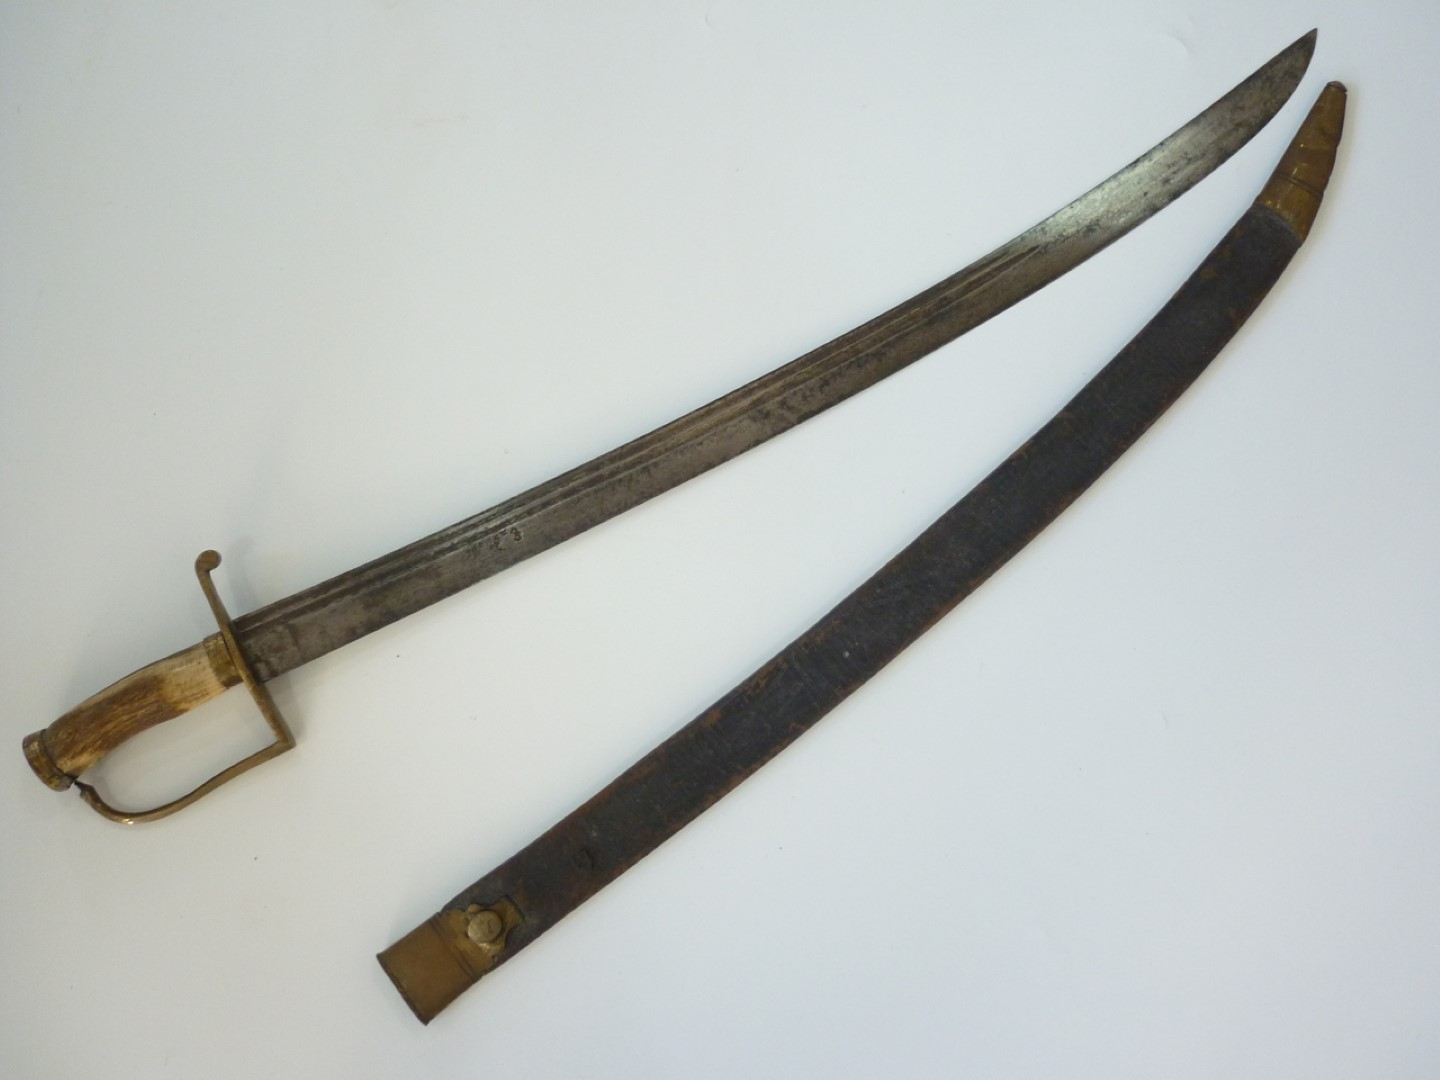 Lot 94 - A George III Naval cutlass, having brass stirrup hilt with antler grip, double fullered curved